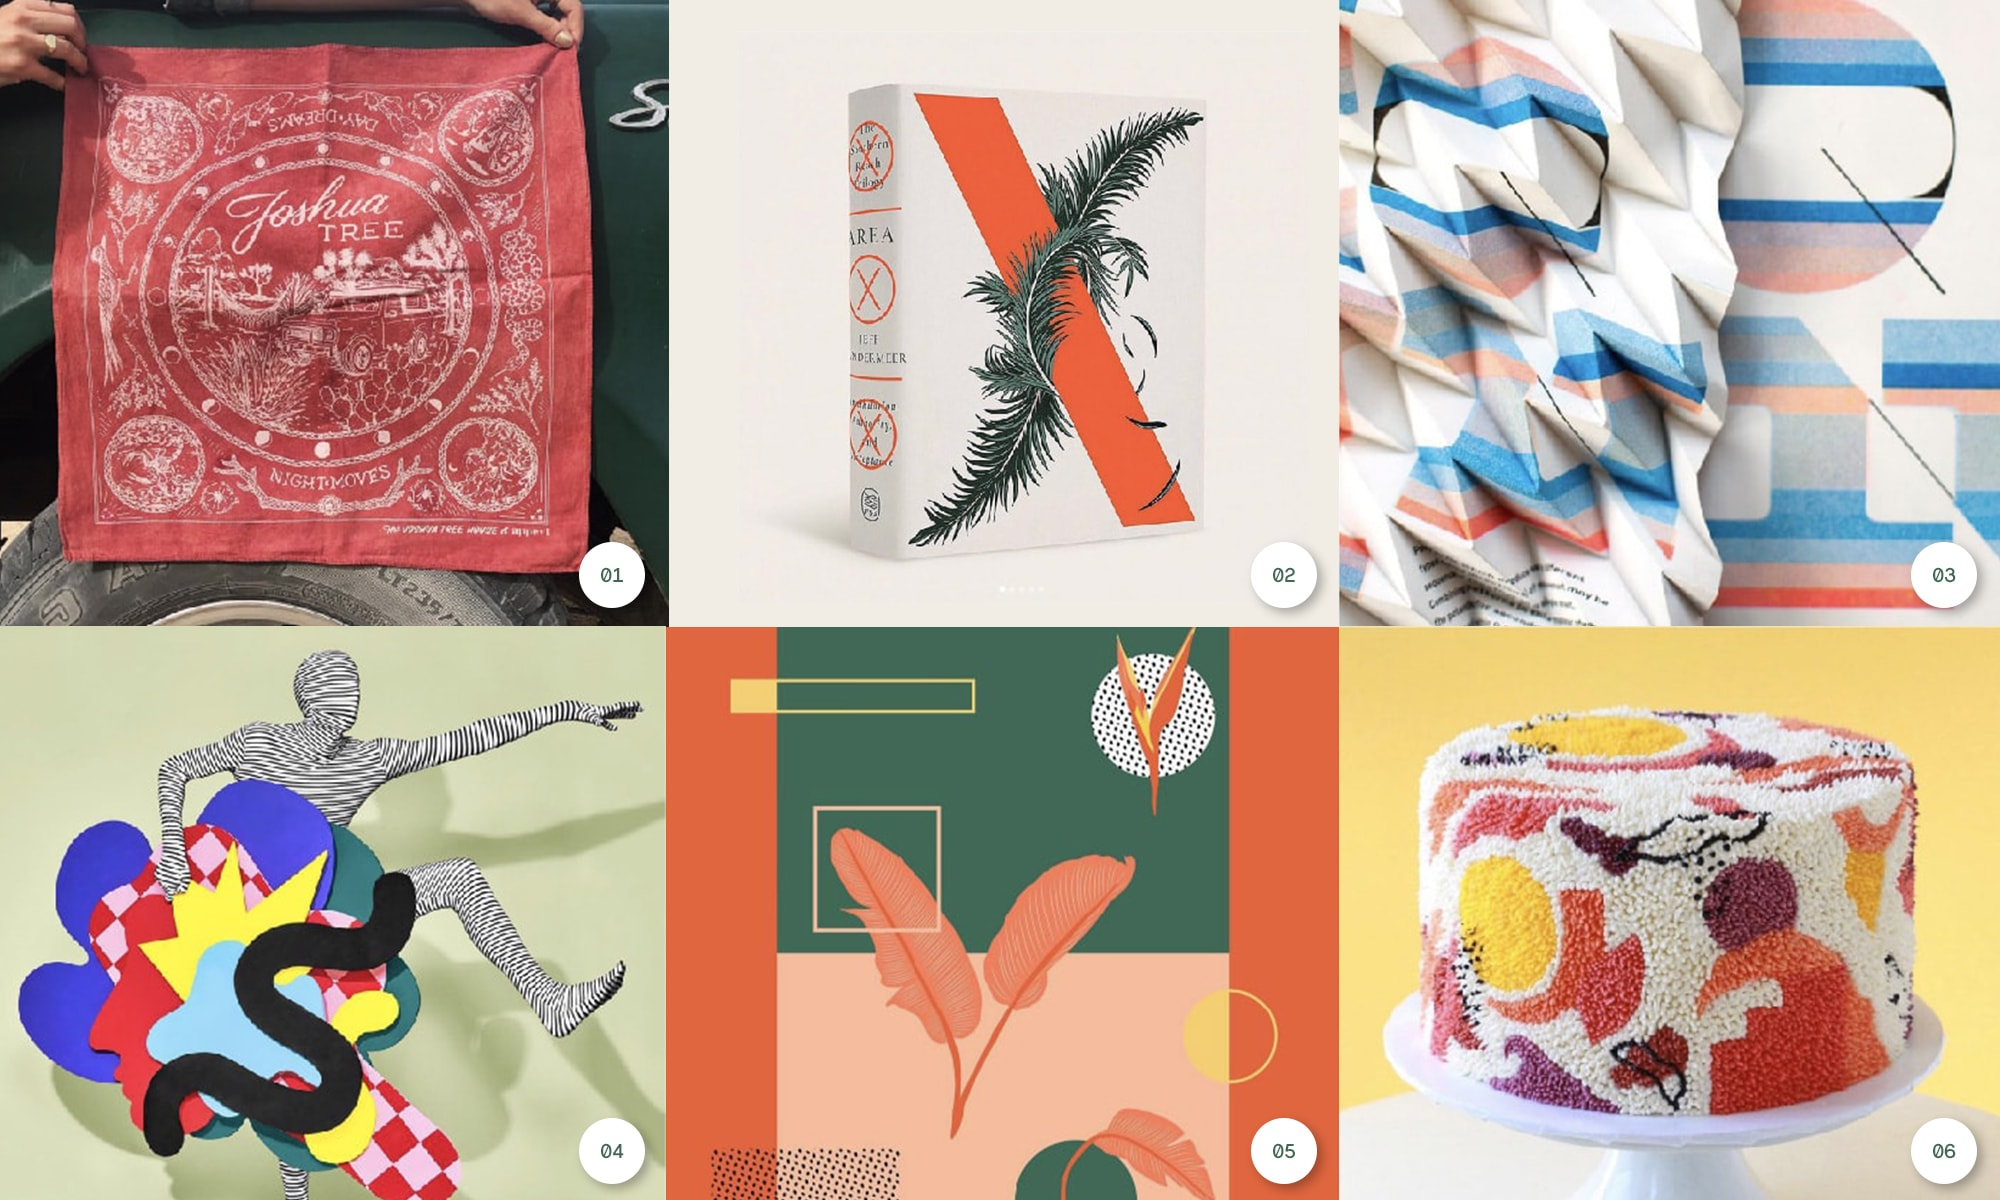 6 images to highlight designer work